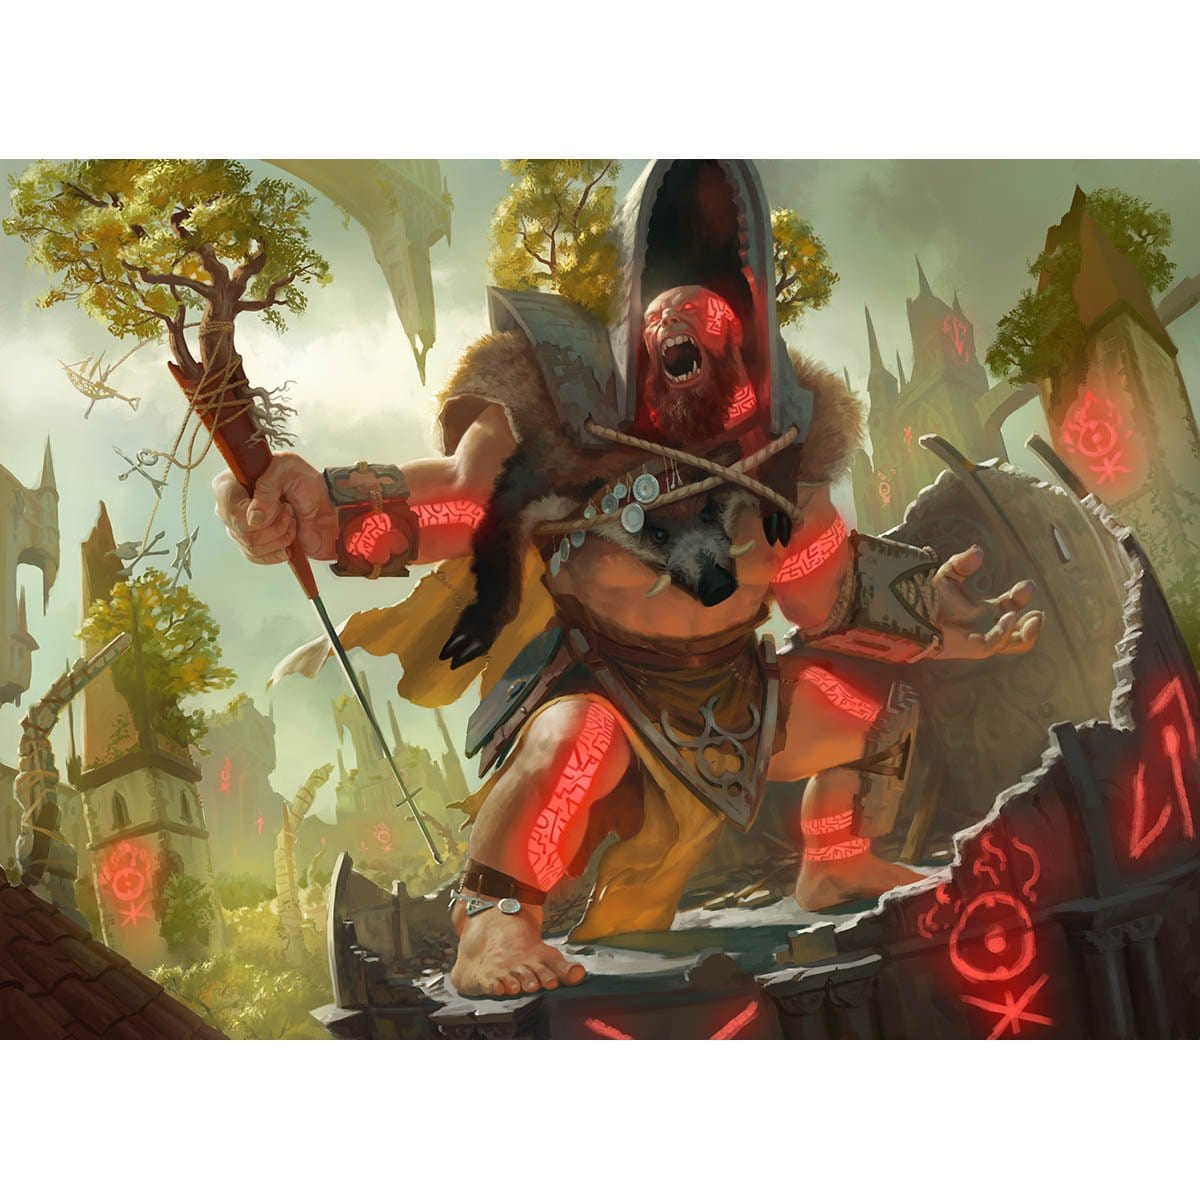 Sunder Shaman Print - Print - Original Magic Art - Accessories for Magic the Gathering and other card games